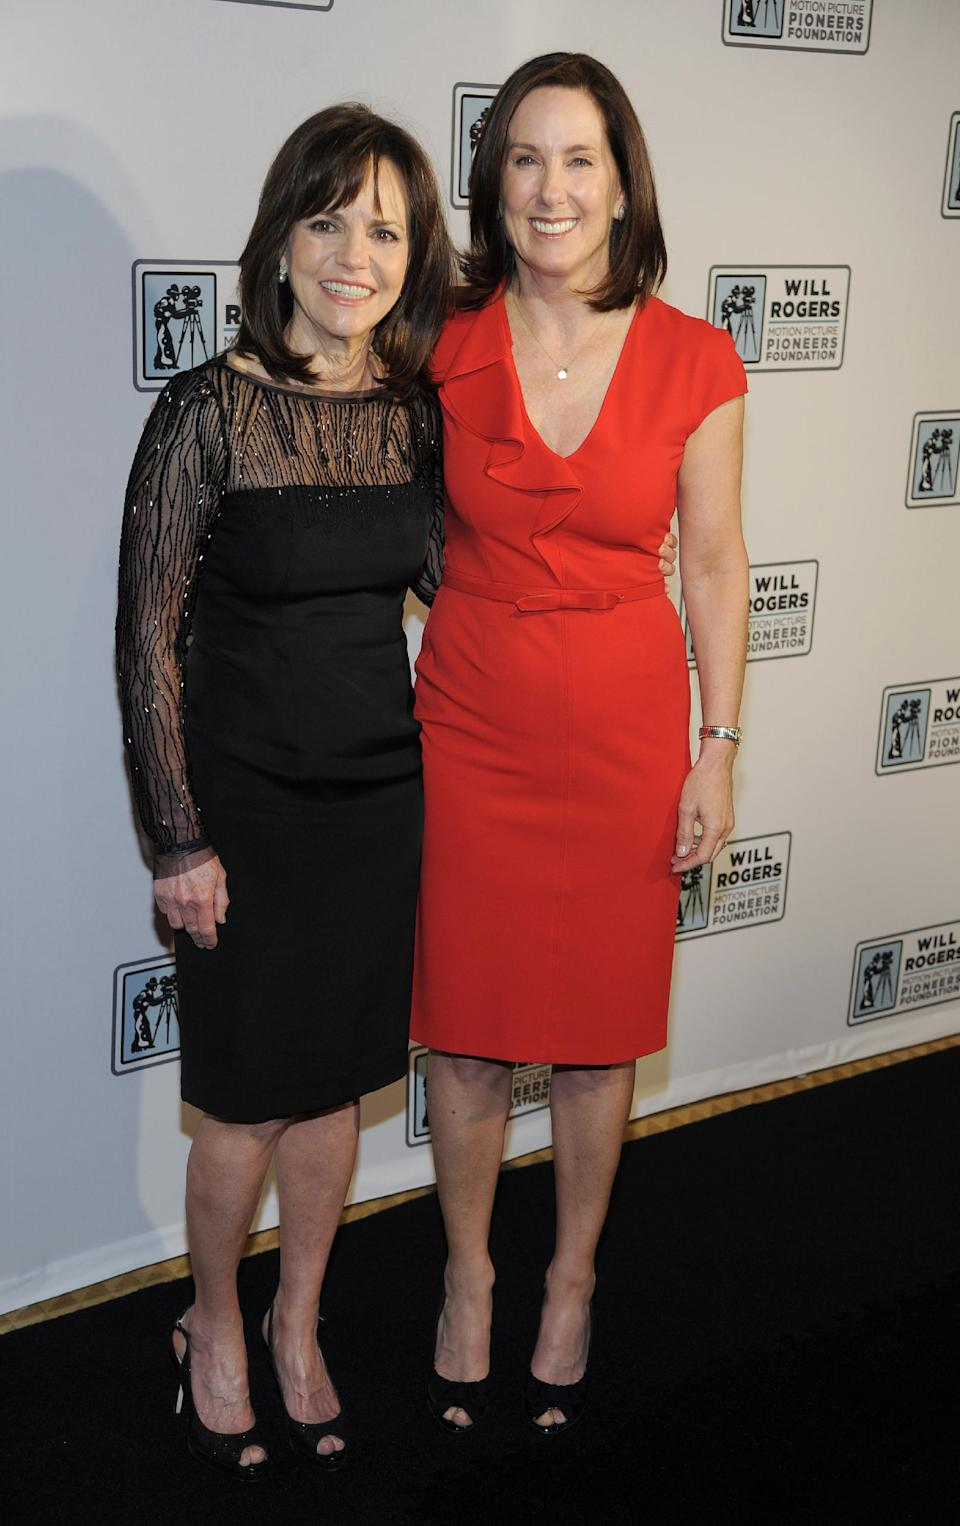 Film producer and honoree Kathleen Kennedy, right, poses with actress Sally Field at the Pioneer of the Year Dinner at CinemaCon 2013 at Caesars Palace on Wednesday, April 17, 2013 in Las Vegas. (Photo by Chris Pizzello/Invision/AP)